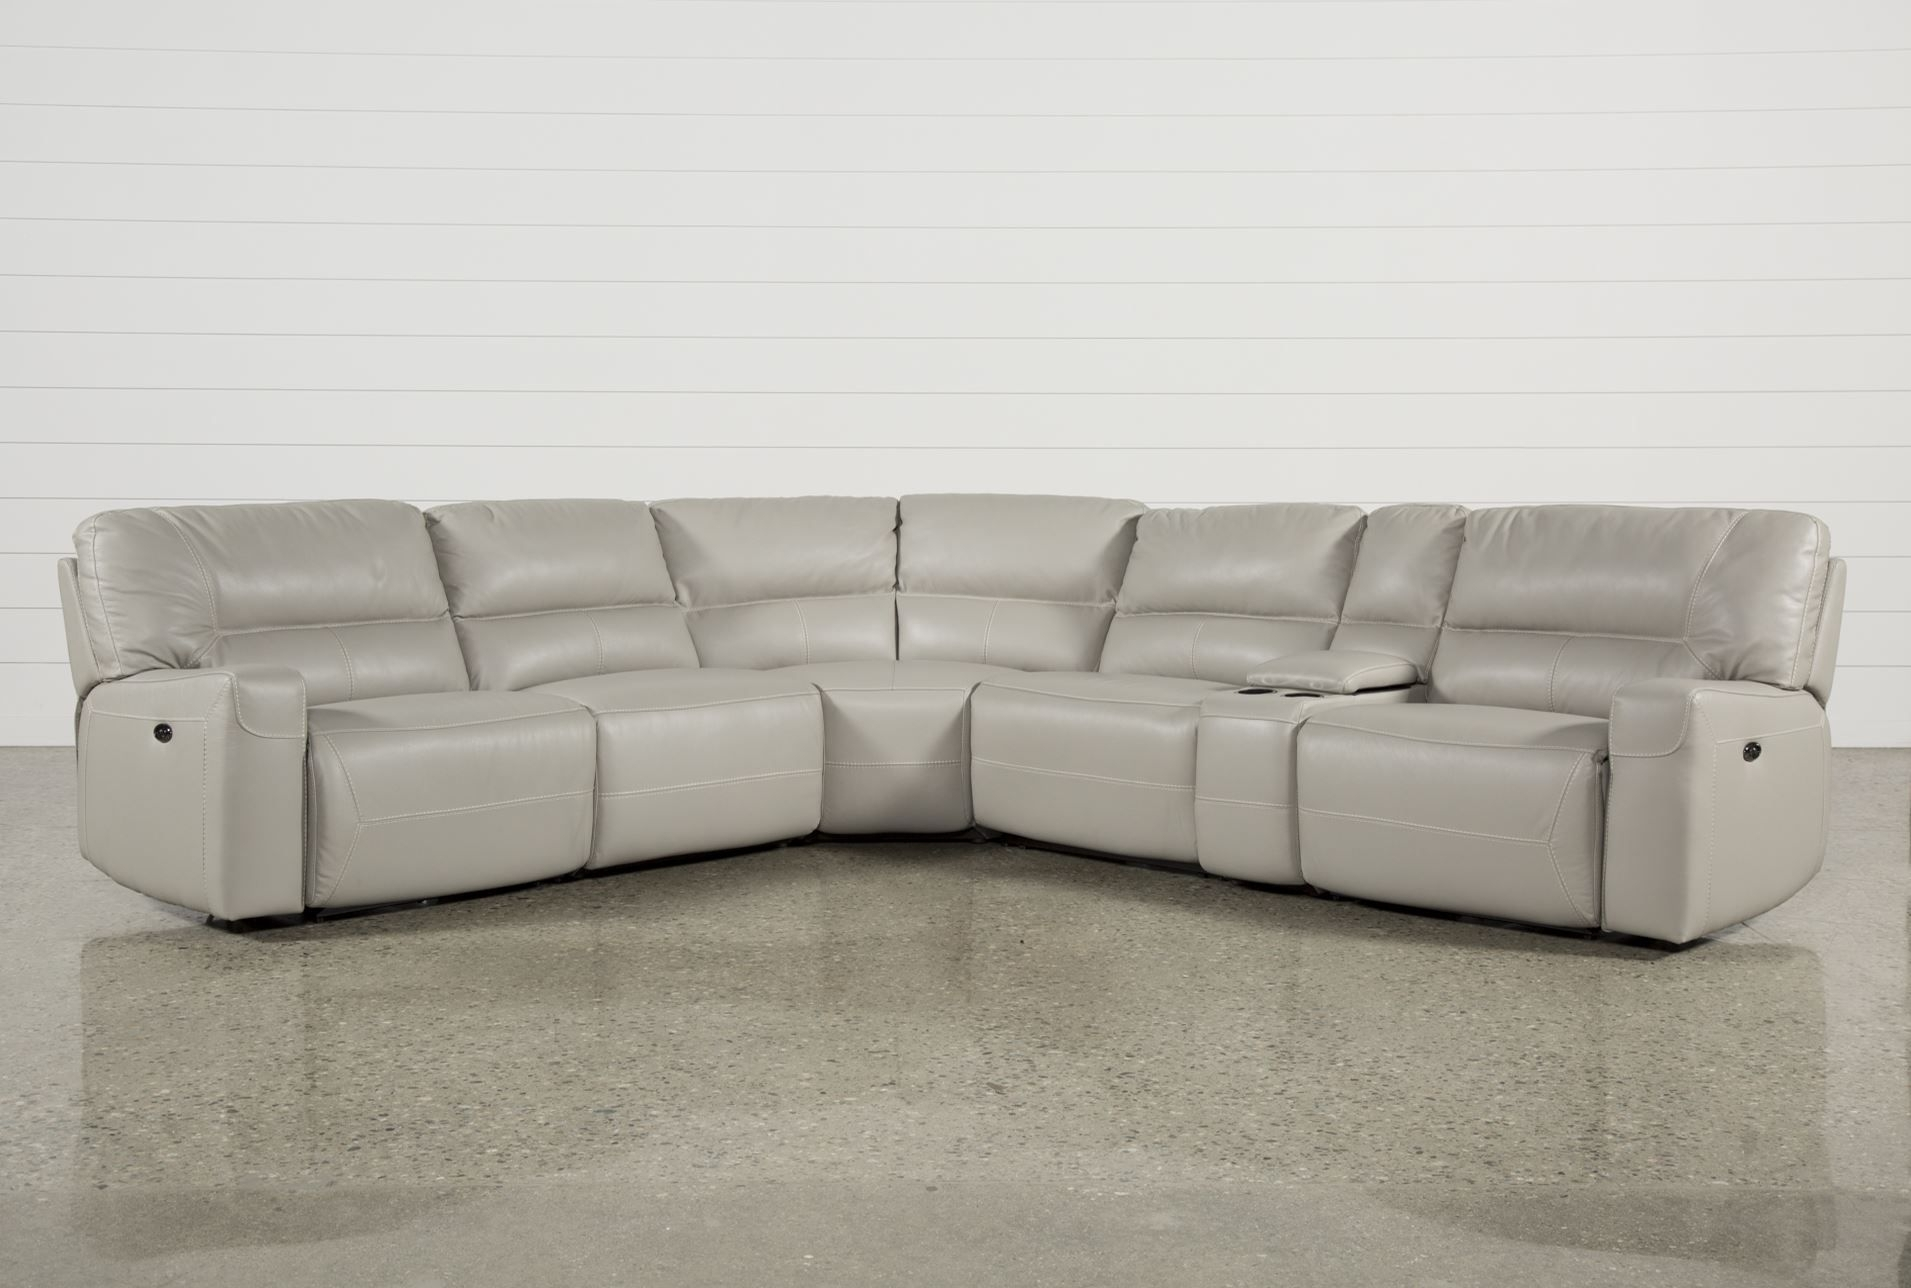 6 Piece Power Reclining Sectional, Renaldo, Grey, Sofas | Reclining in Waylon 3 Piece Power Reclining Sectionals